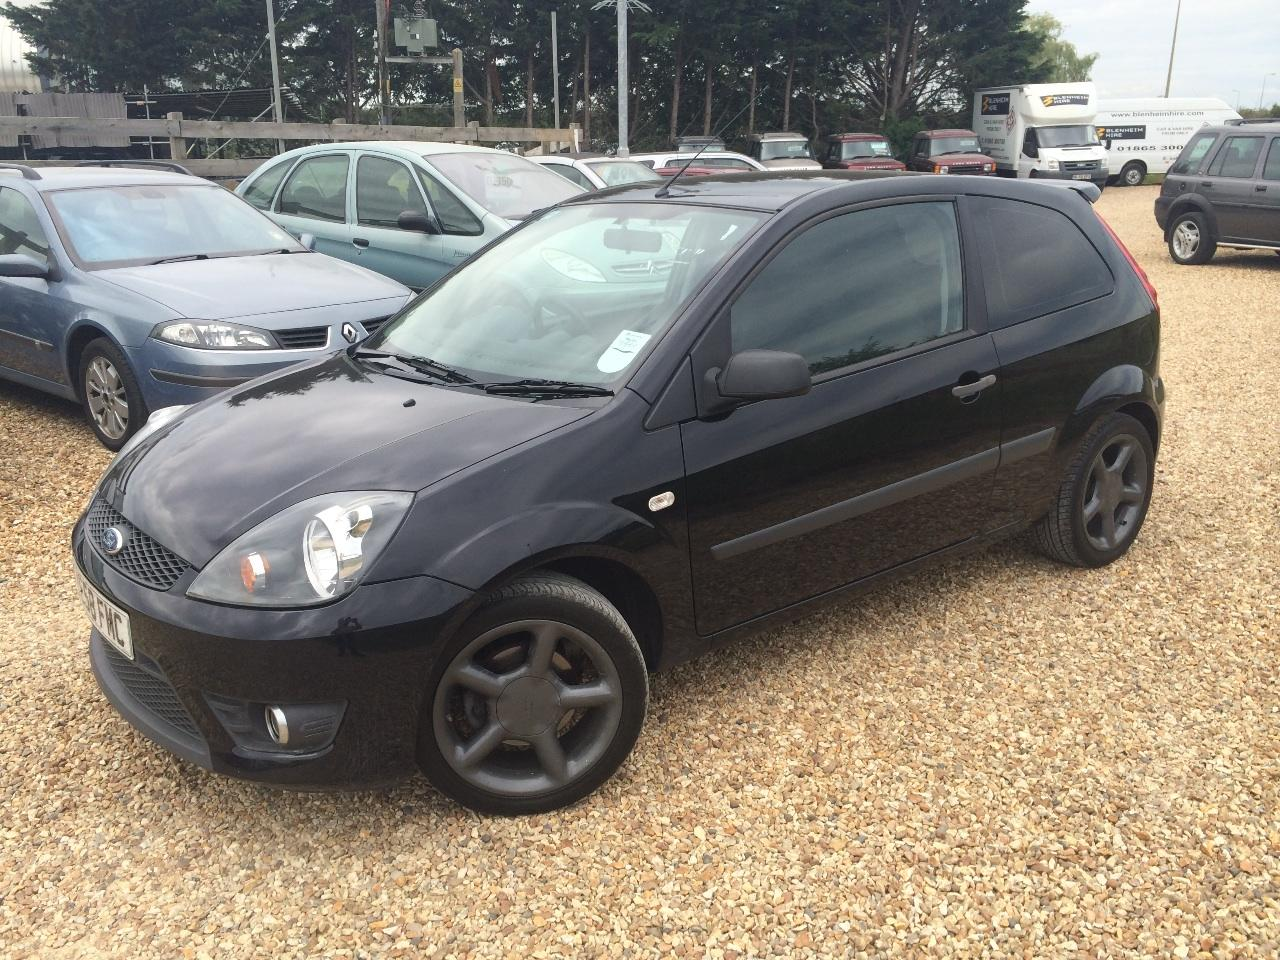 Ford Fiesta 1.6 TDCi ZETEC S 3DR FULL FORD HISTORY ROAD TAX £30 FOR THE YEAR Hatchback Diesel Black